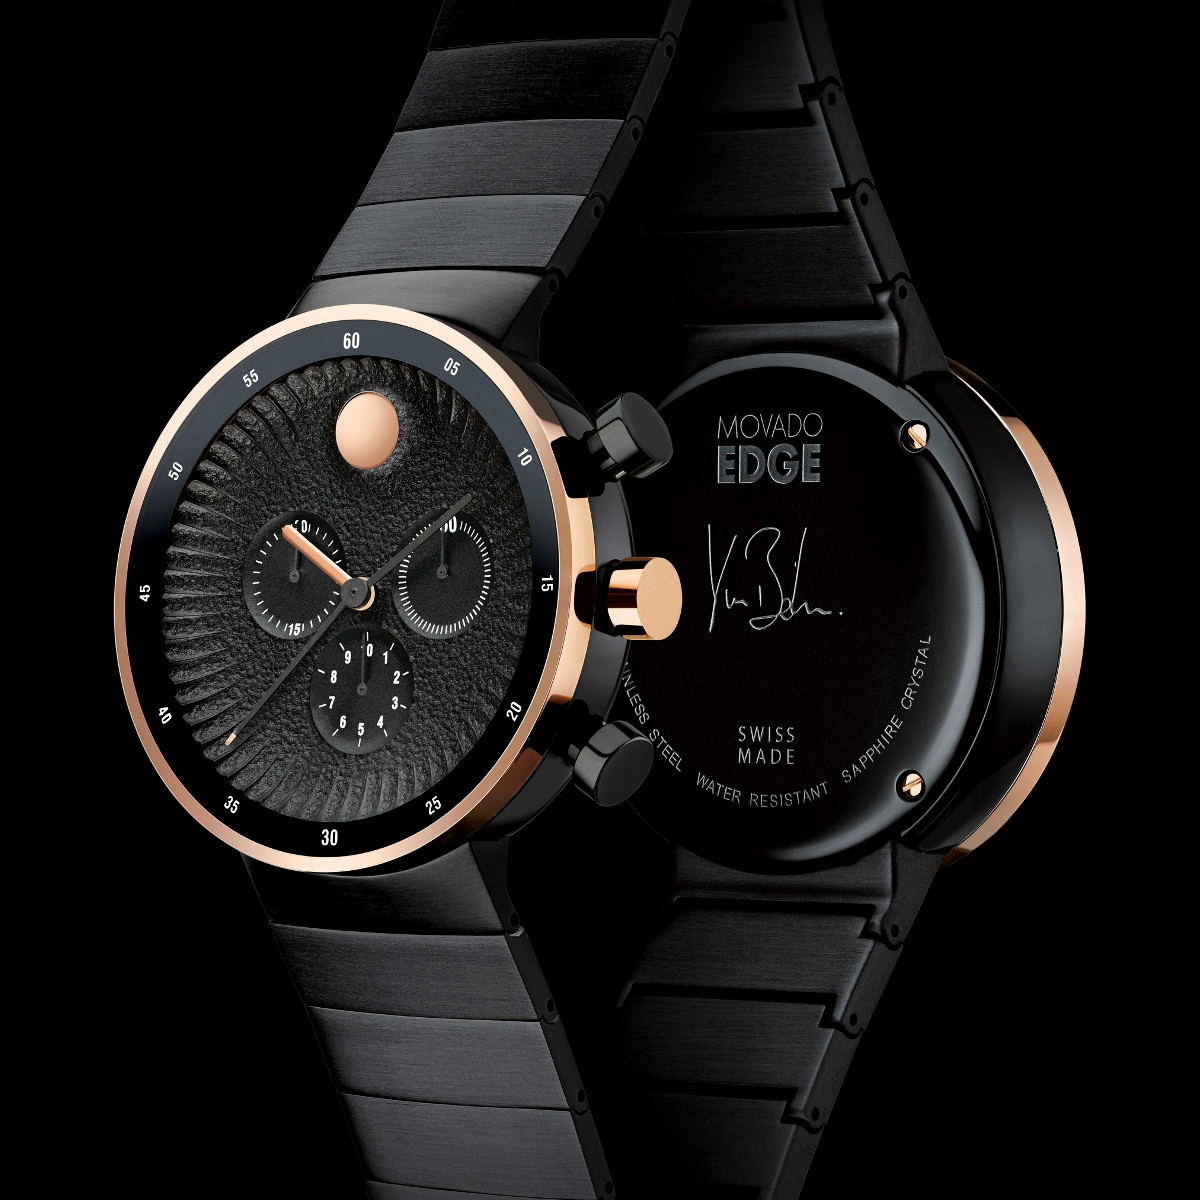 banner đồng hồ movado edge new 2017